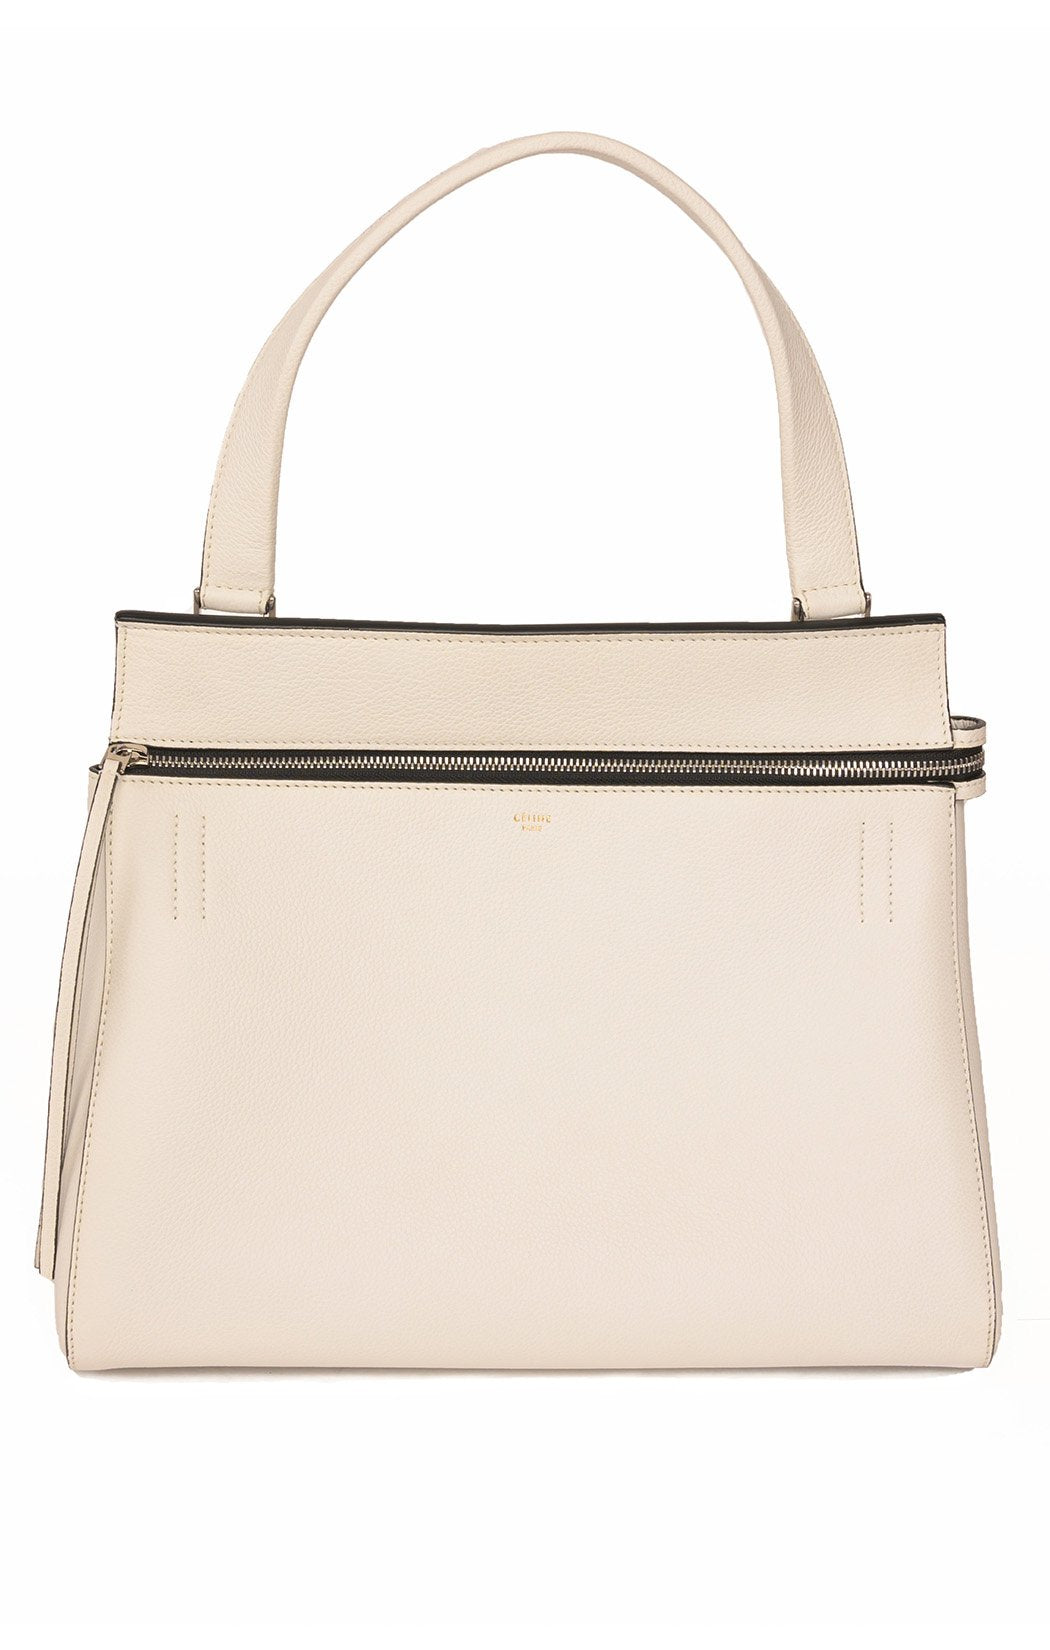 "Front view of CELINE with tags Handbag Size: 13"" W x 11"" H x 7"" D"